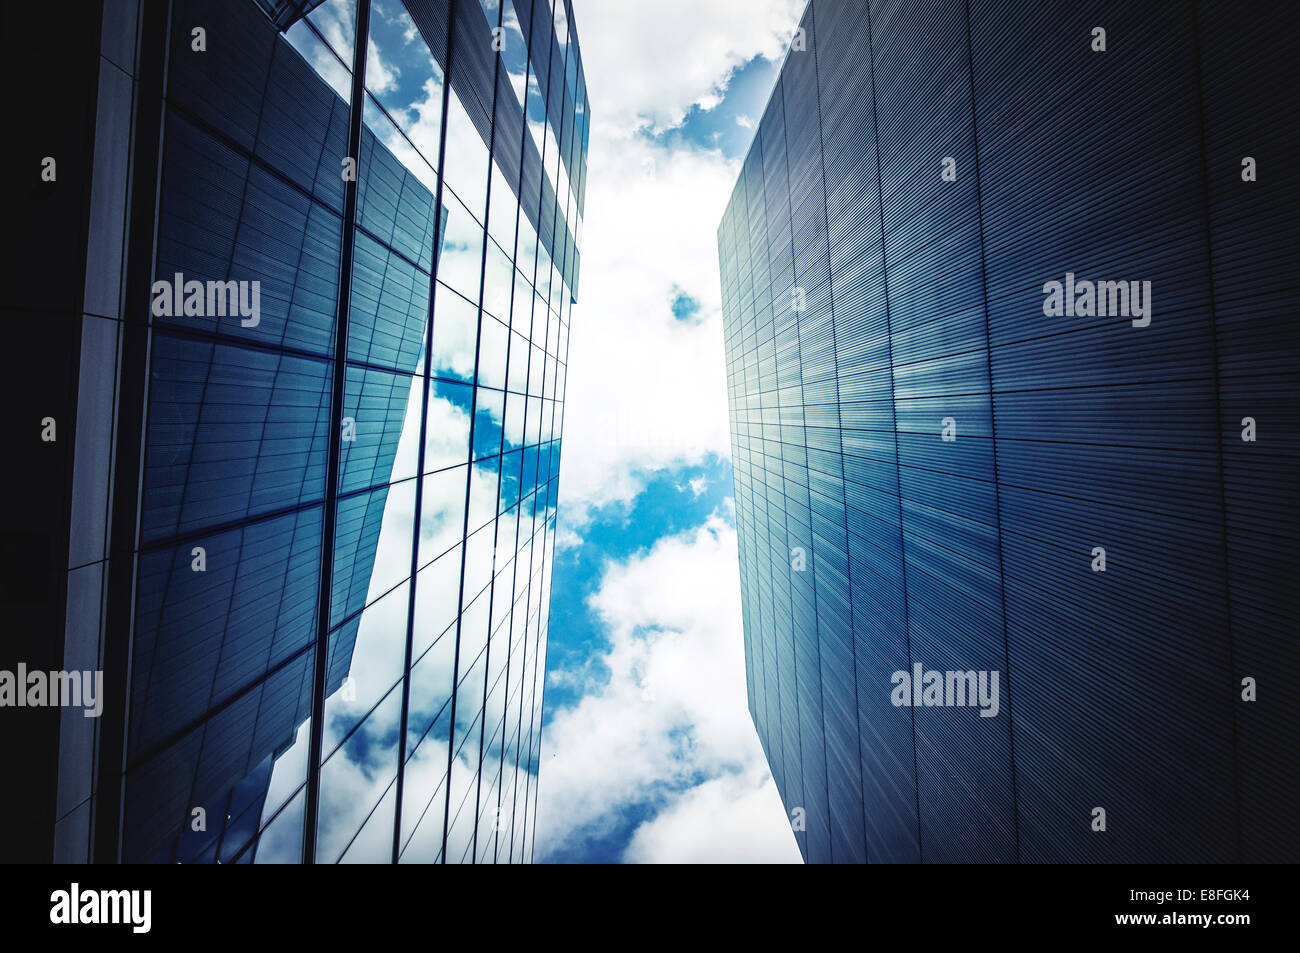 Office buildings with sky and clouds - Stock Image